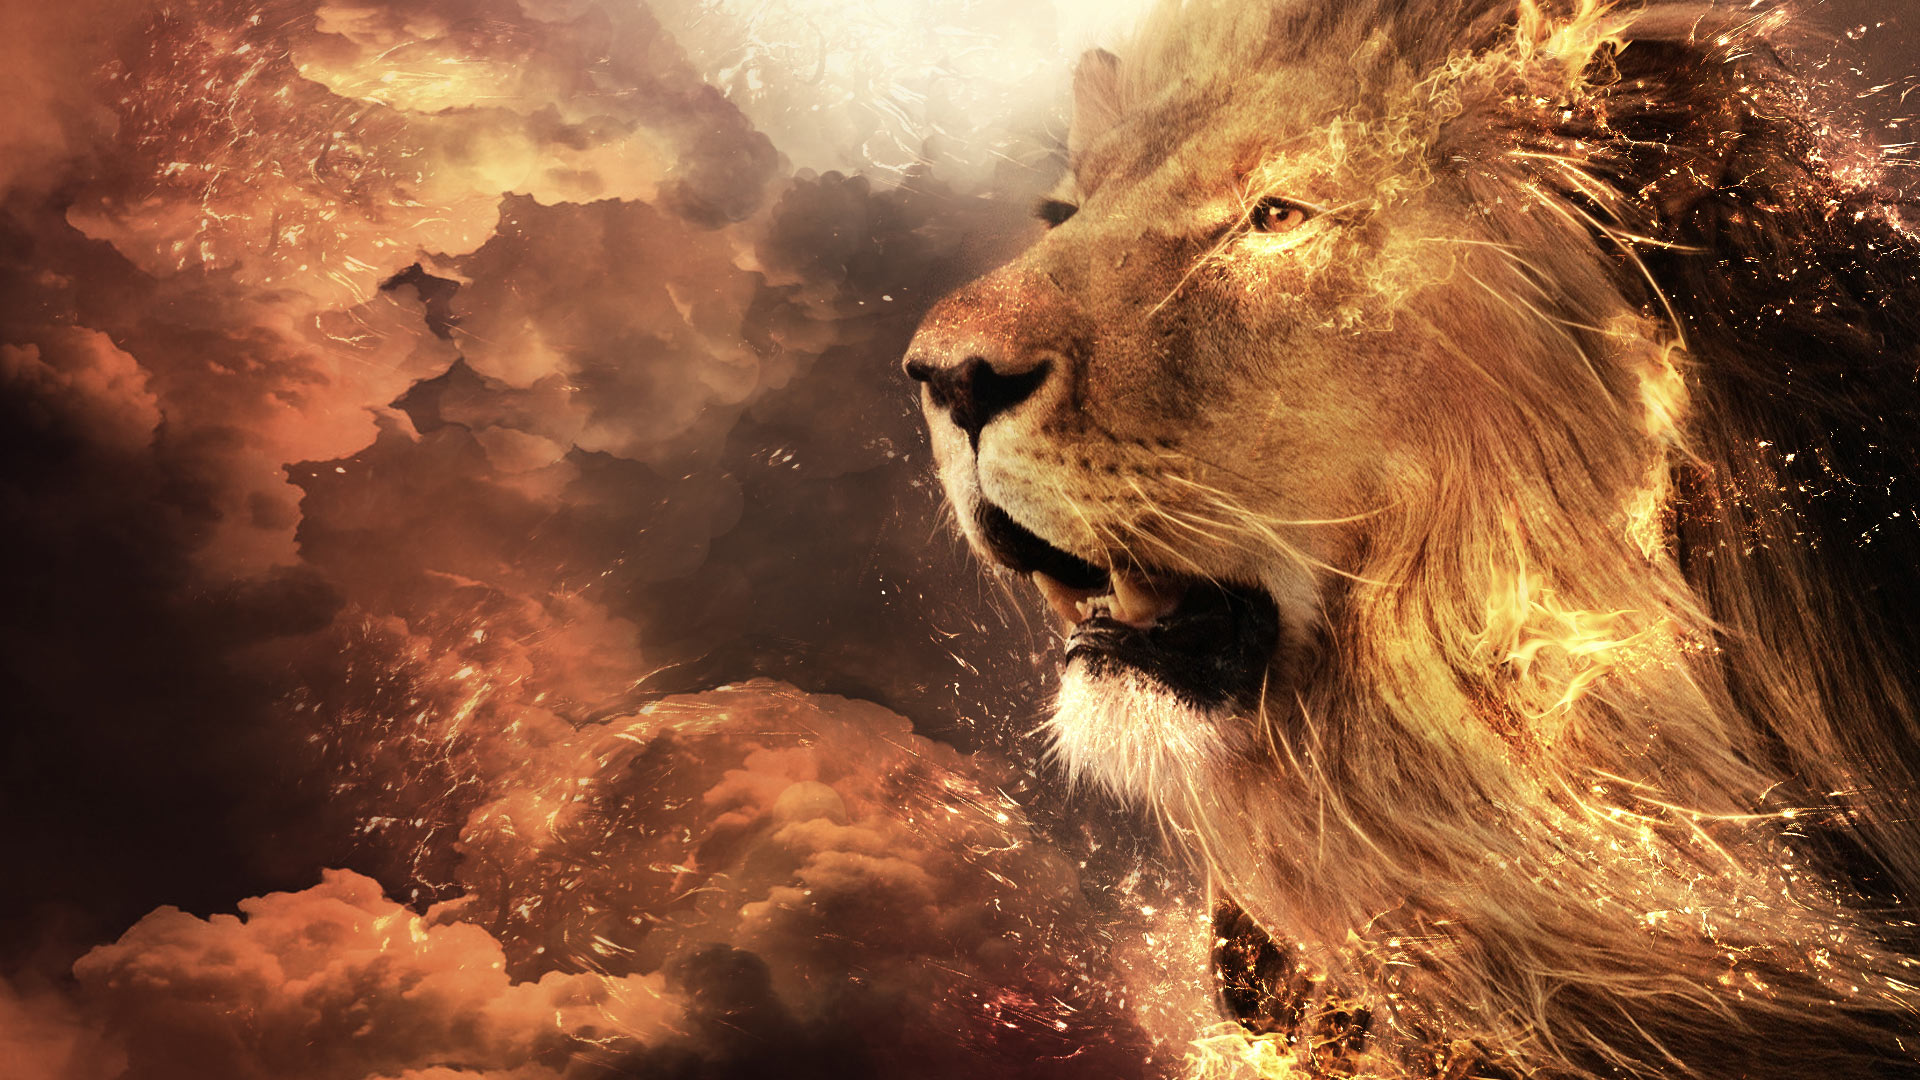 lion wallpaper in hd